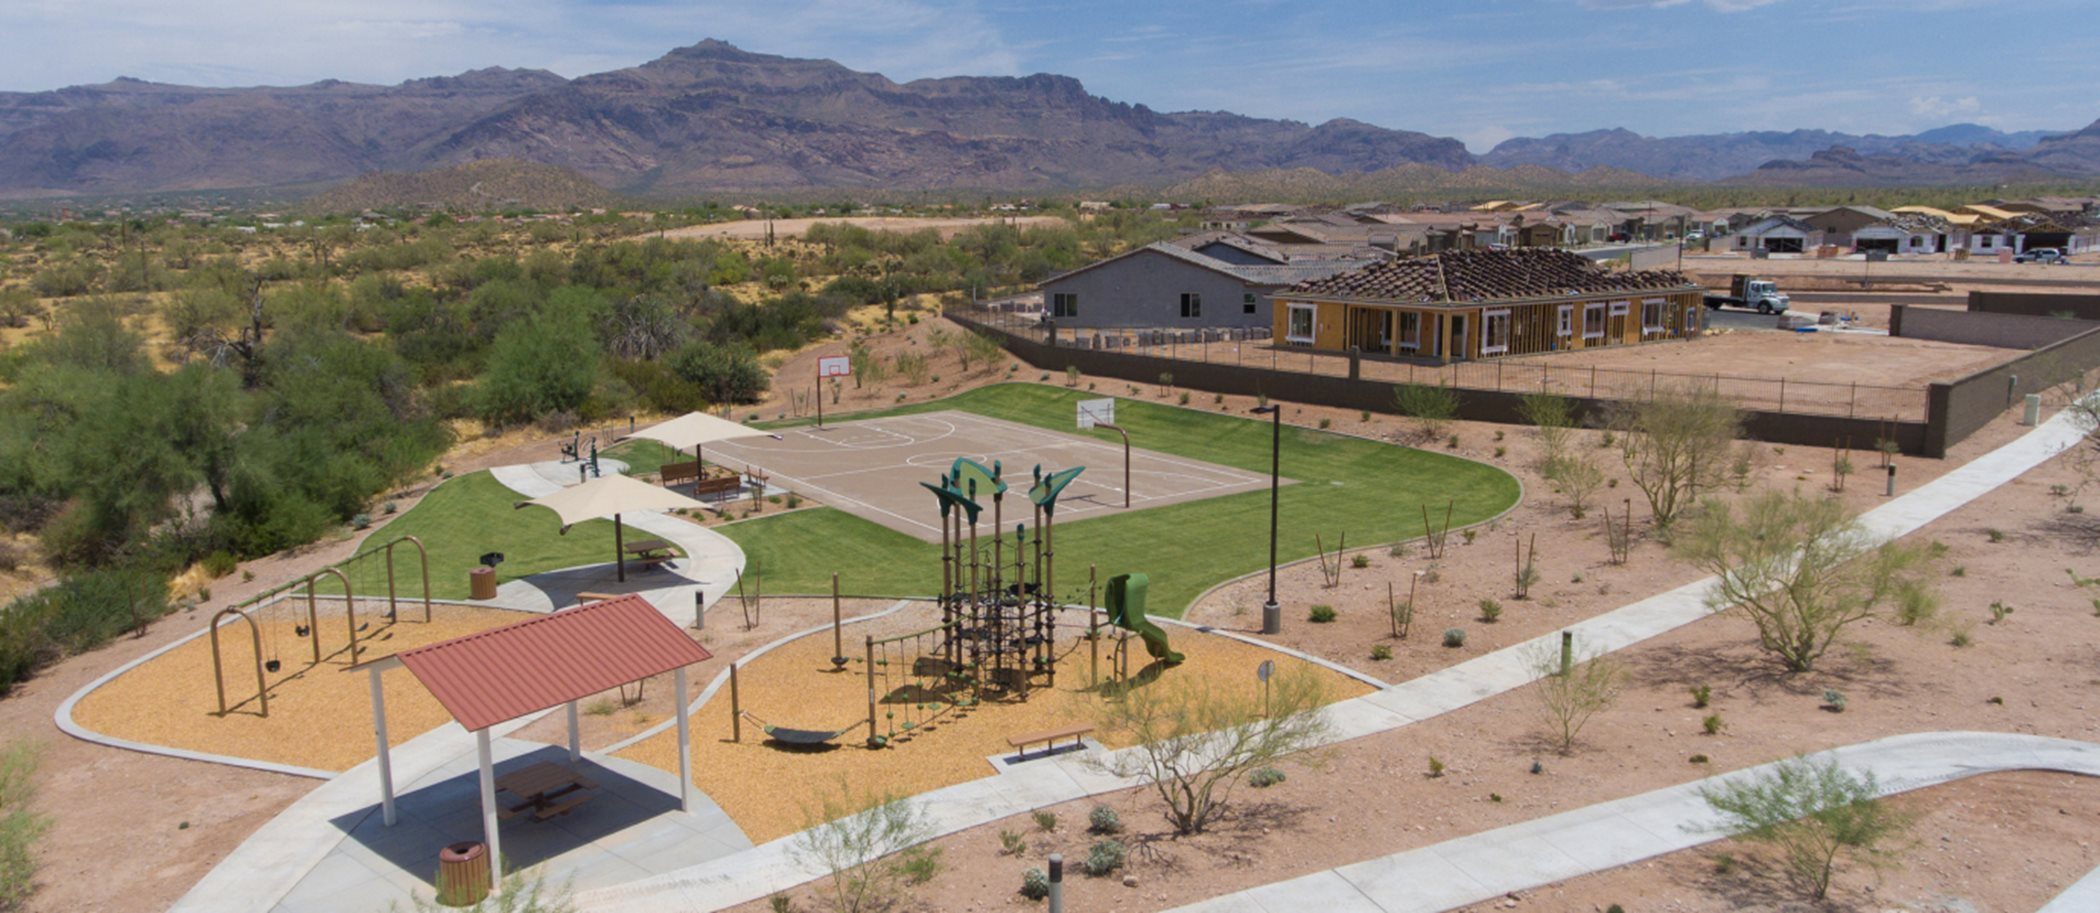 Peralta new single-family homes near popular cities Phoenix and Scottsdale